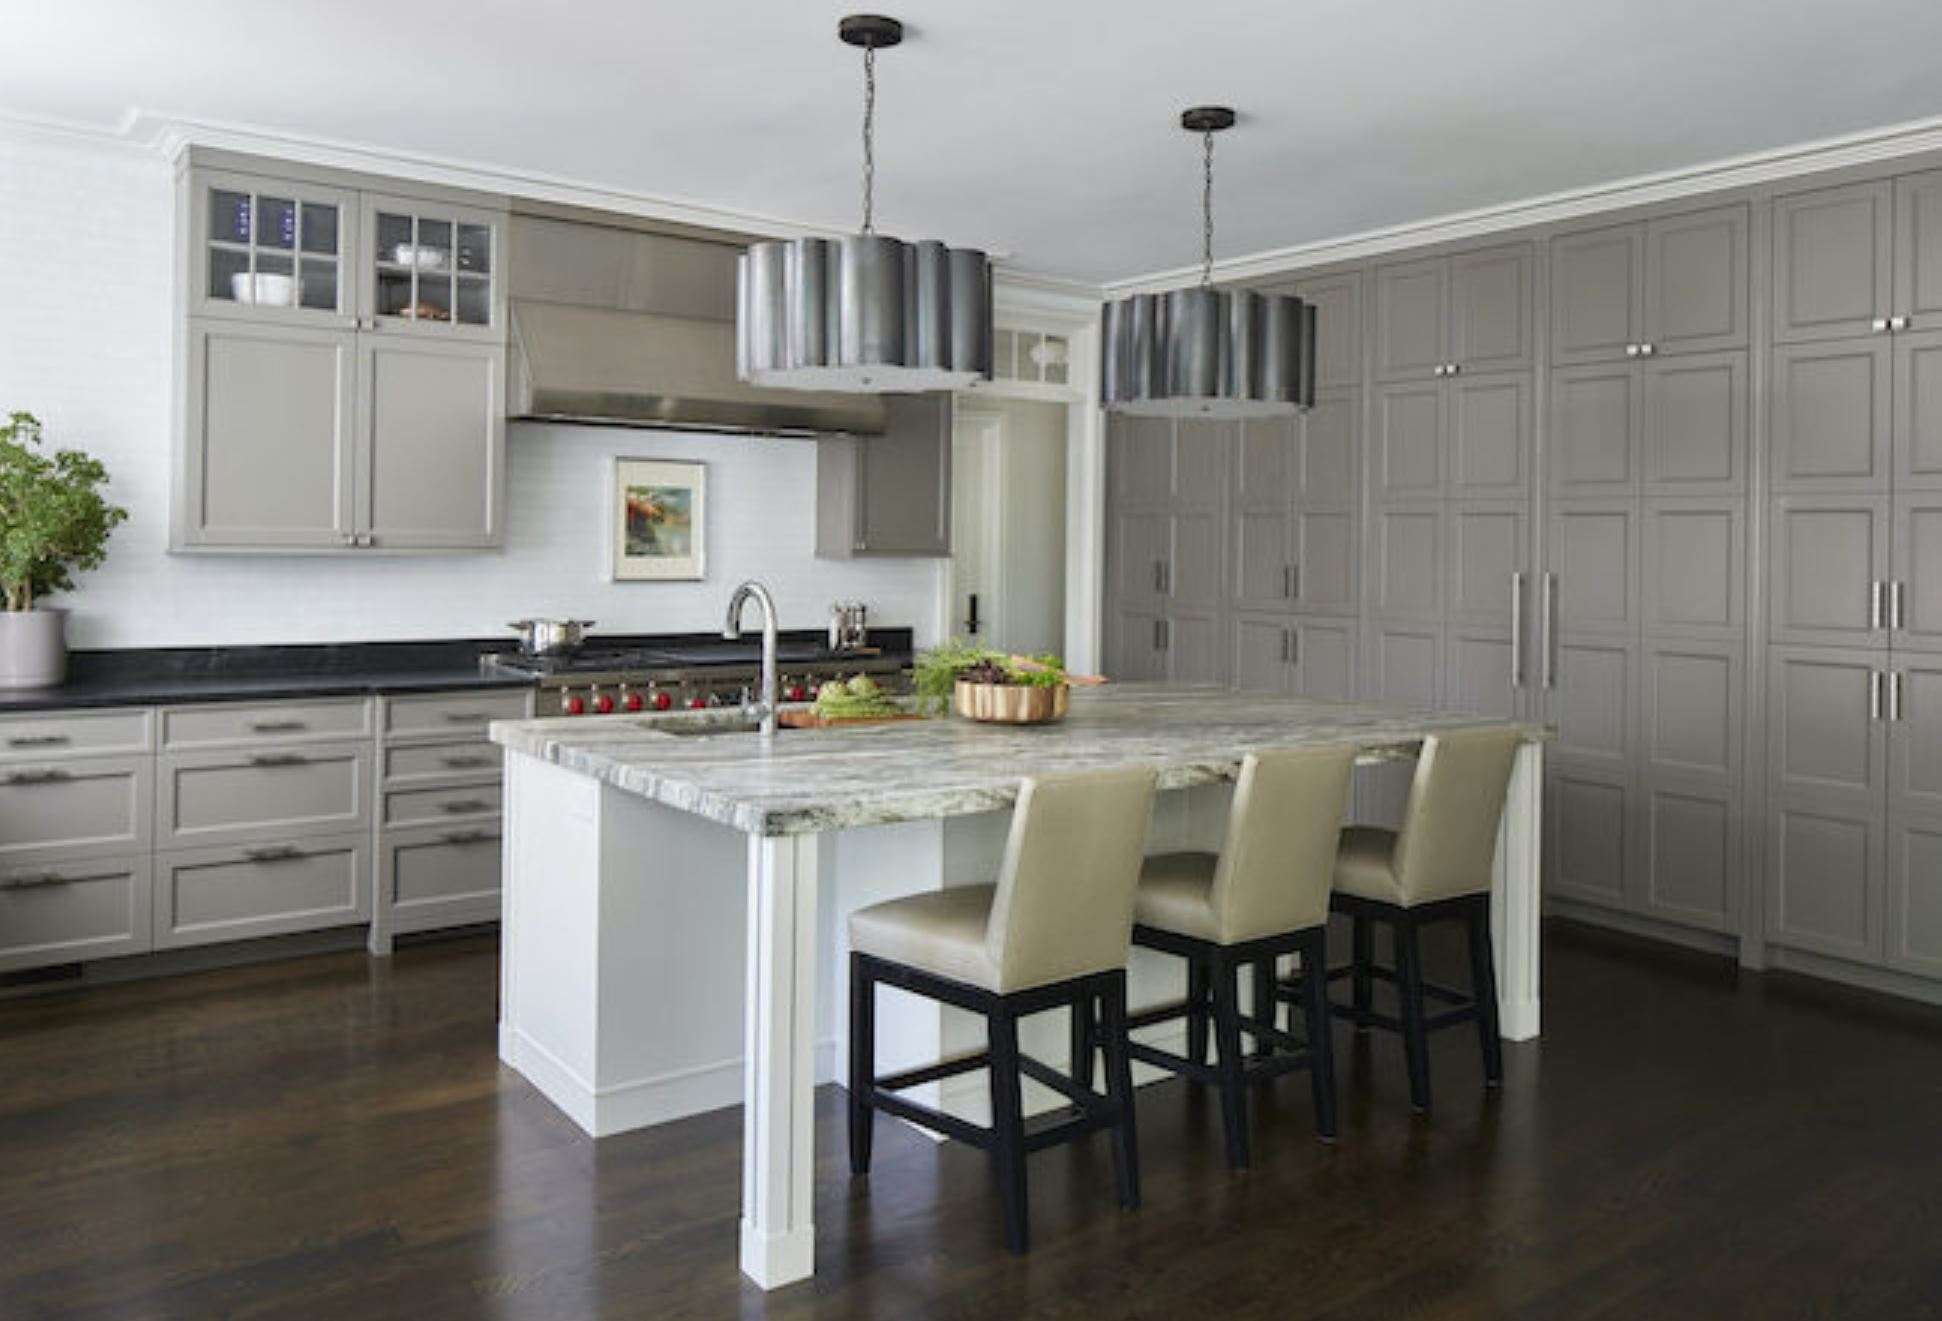 Realtor Magazine 2021 03 15 Ten Kitchen Changes sought out by buyers in 2021 since the begining of the plandemic after going through the COVID-19 Coronavirus pandemic Hoey Team exp Realty 02 JPG